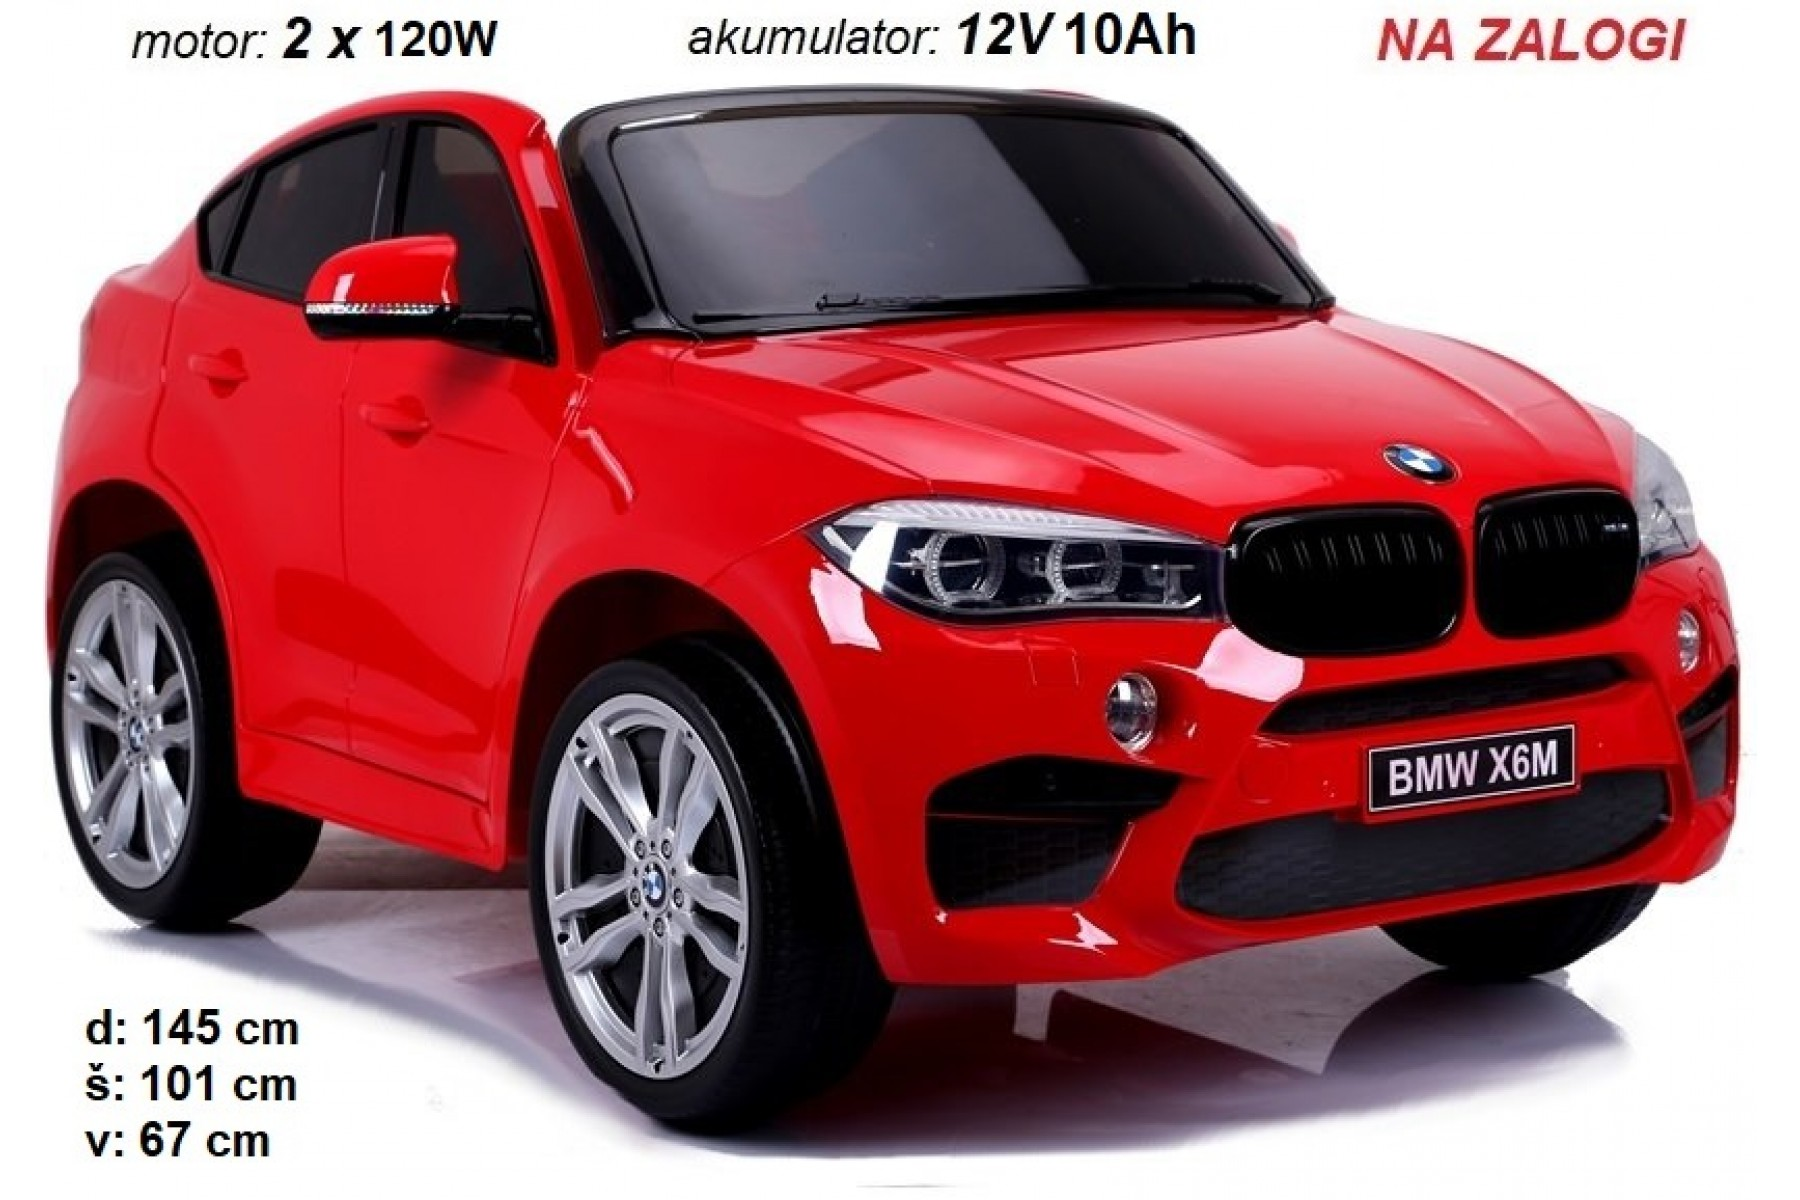 BMW X6M dvosed 2x120W (RDEČ)